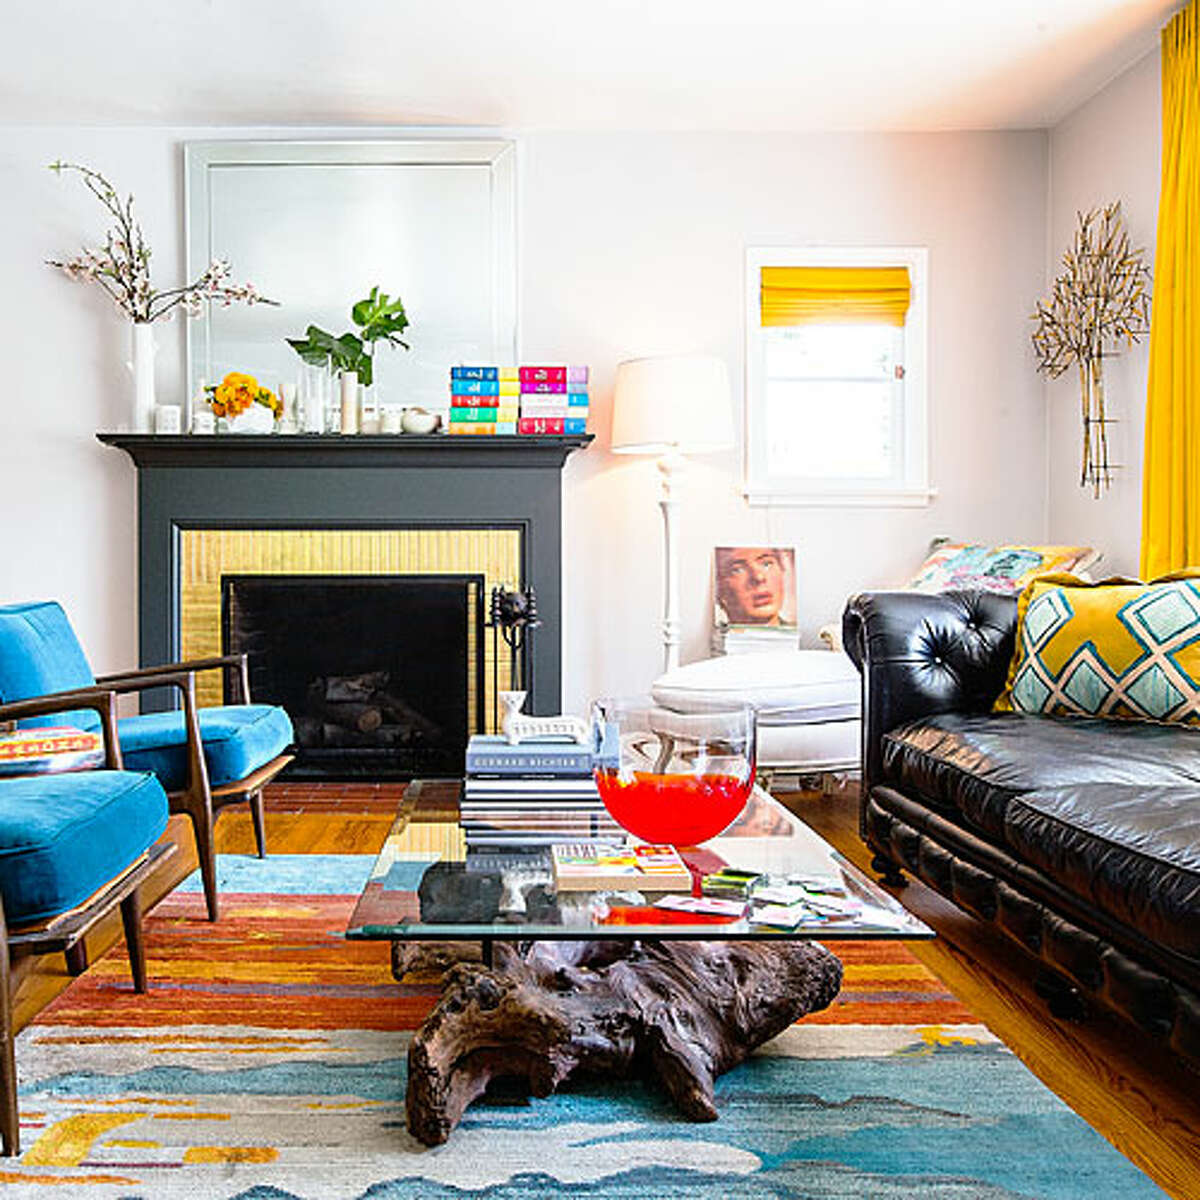 Same colors, different ways O'Brien and Leaver used many of the same hues in both their kitchen and living room. Here in the living room, teal dominates, while charcoal gives the fireplace more heft. Patches of hot yellow in the rug encouraged the couple to hang curtains in the same shade.